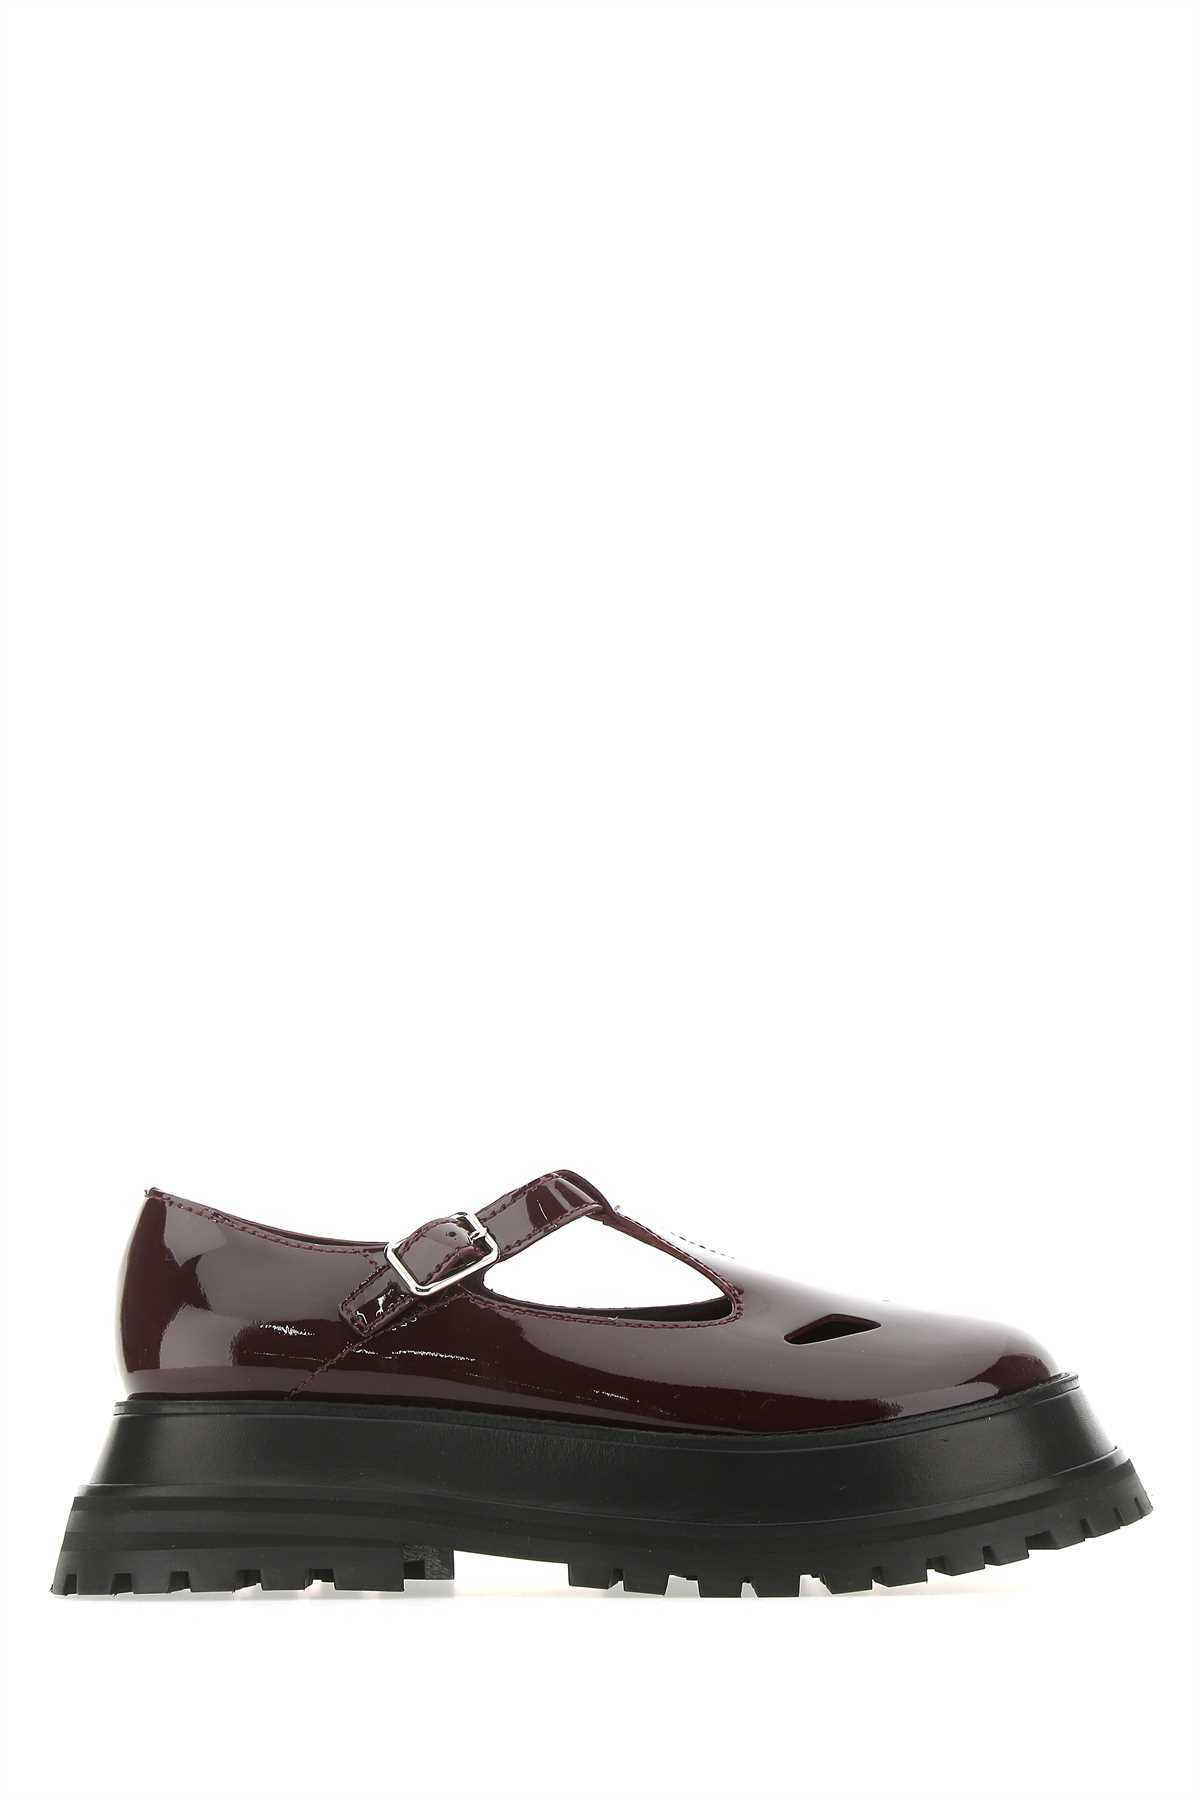 Burberry LACE-UP SHOES (8031246 A1308) (Burberry/シューズ・サンダルその他) 64757966